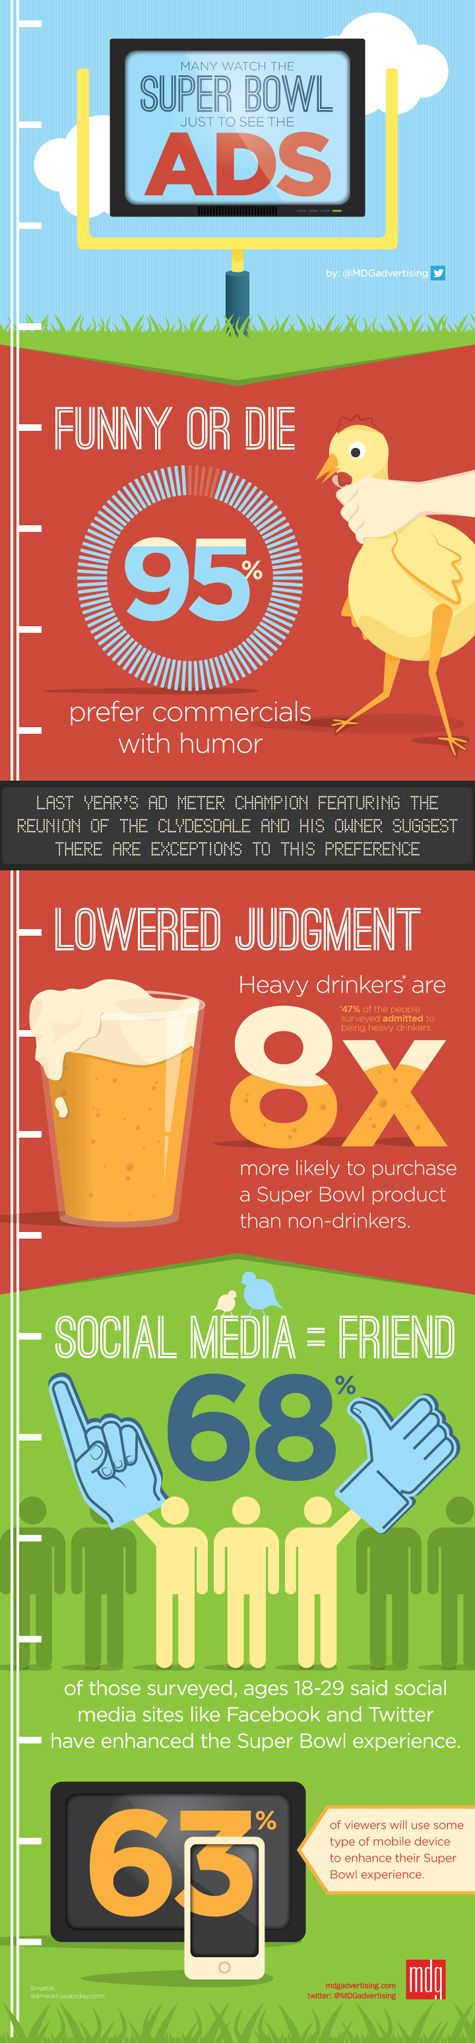 Super Bowl Ads Score More Fans Than the Game #Infographic -- On Super Bowl Sunday, millions of people love watching the play-by-play action but even more get a kick out of watching the ads. At least that's the call from a recent survey of 1,000 Americans where more than three-quarters of respondents say they favor the TV spots more than the snaps. While the... #SuperBowl #Advertising